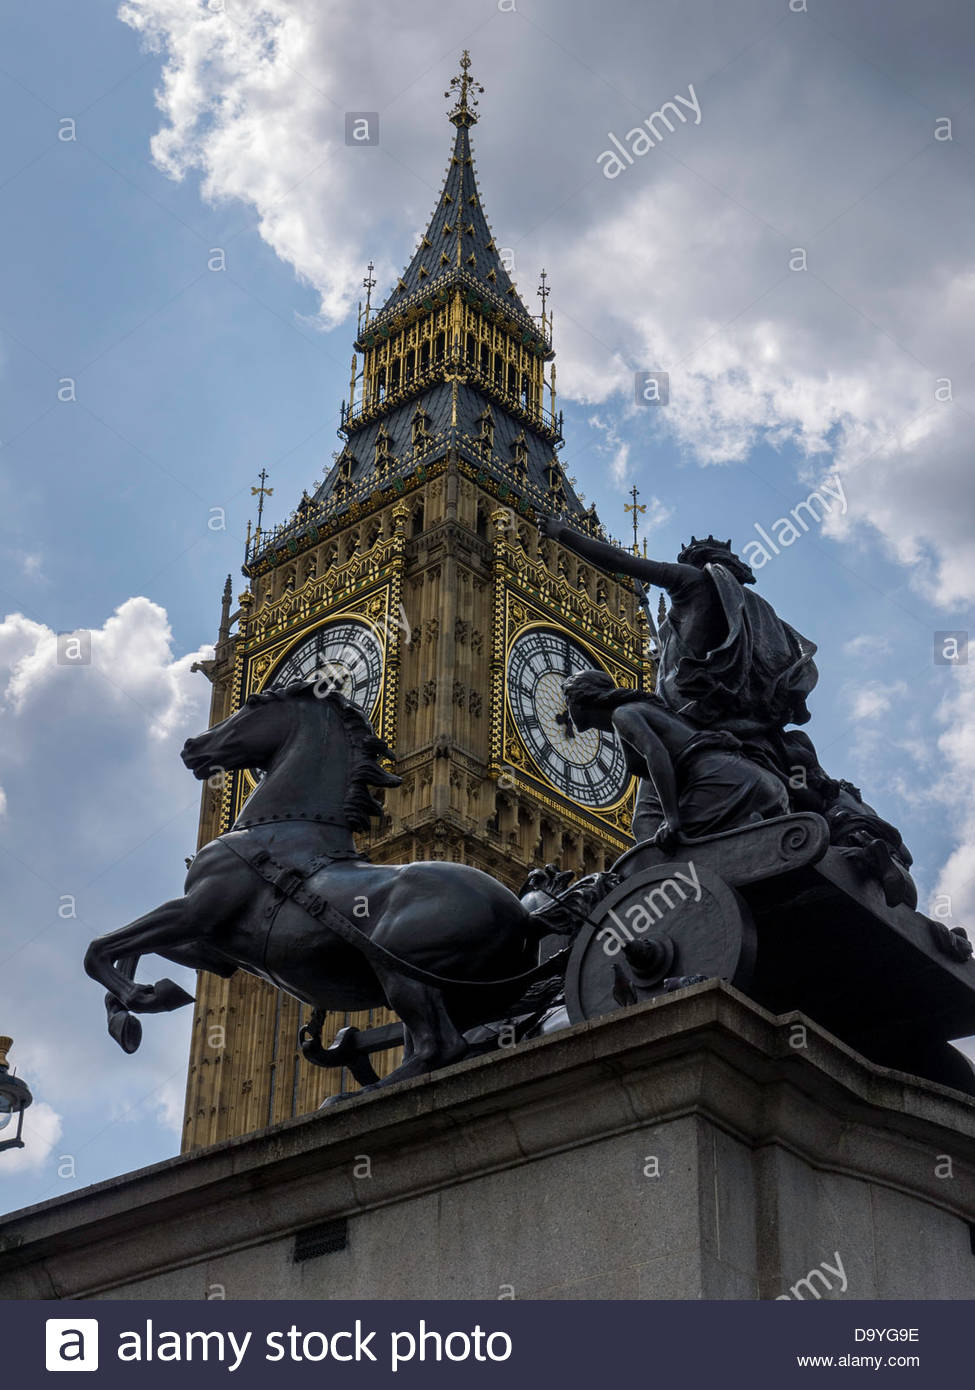 London England UK, London UK Big Ben Clock Chariot of Queen Boadicea and her daughters. - Stock Image